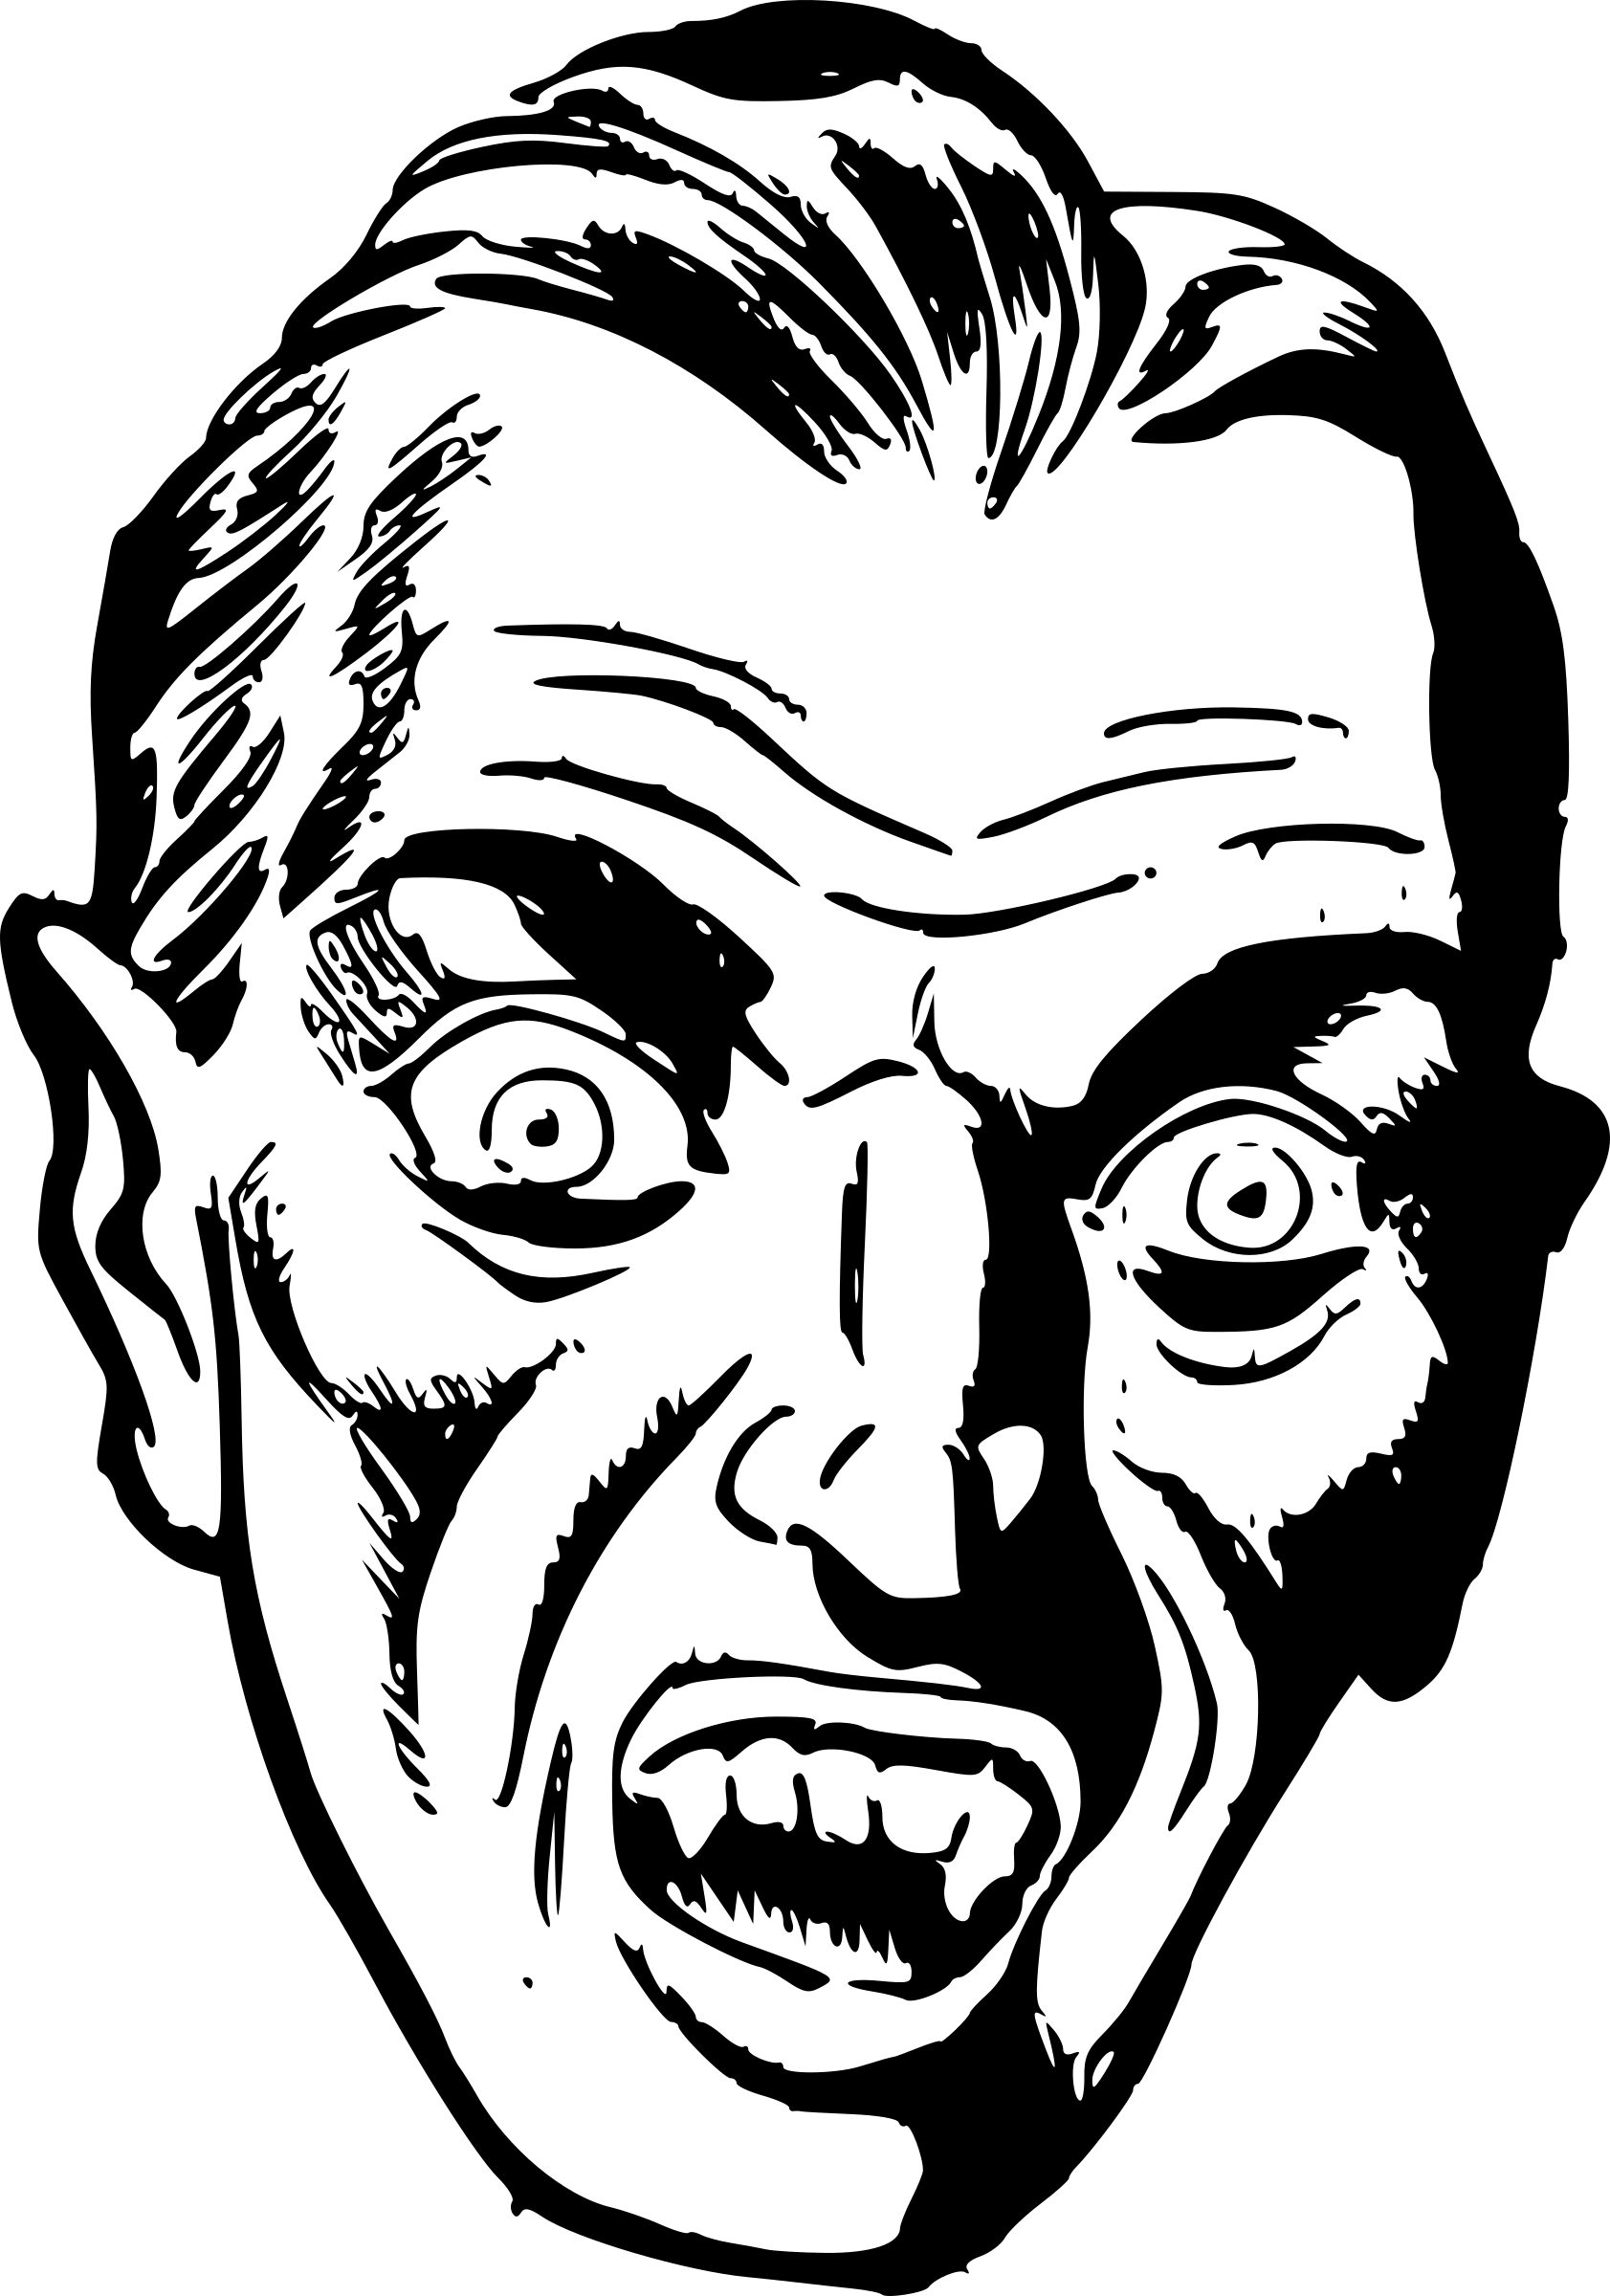 Halloween clipart black and white vampire jpg library Vampire Mouth Drawing at GetDrawings.com | Free for personal use ... jpg library